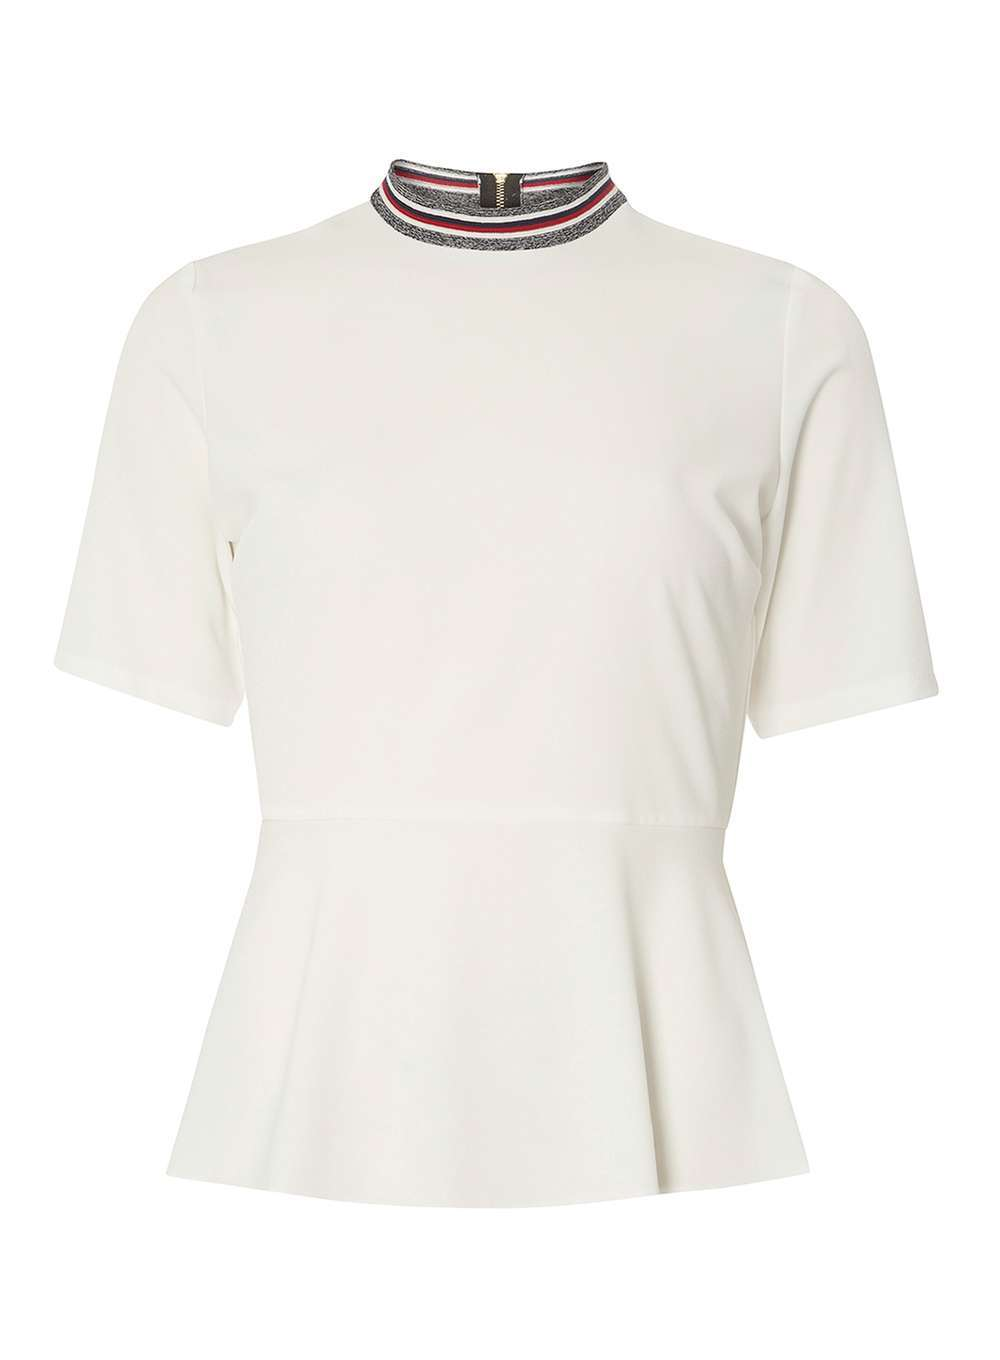 Womens White Peplum Ribbed Neck Top White - pattern: plain; neckline: high neck; waist detail: peplum waist detail; predominant colour: ivory/cream; secondary colour: mid grey; occasions: casual; length: standard; style: top; fibres: polyester/polyamide - stretch; fit: body skimming; sleeve length: short sleeve; sleeve style: standard; pattern type: fabric; texture group: jersey - stretchy/drapey; multicoloured: multicoloured; wardrobe: basic; season: a/w 2016